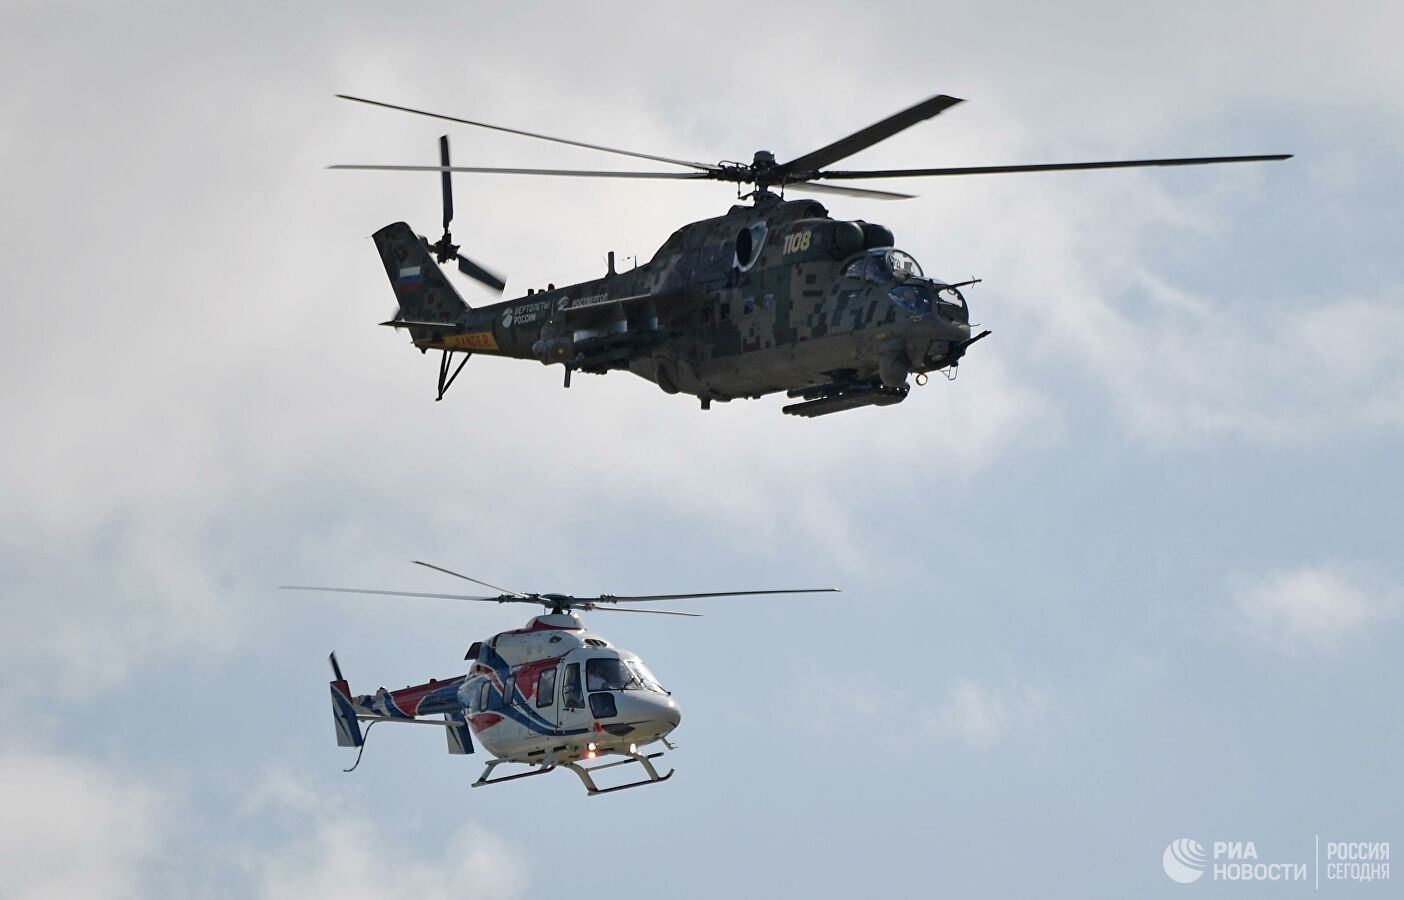 Bosnia and Herzegovina acquired three police helicopters from Russia